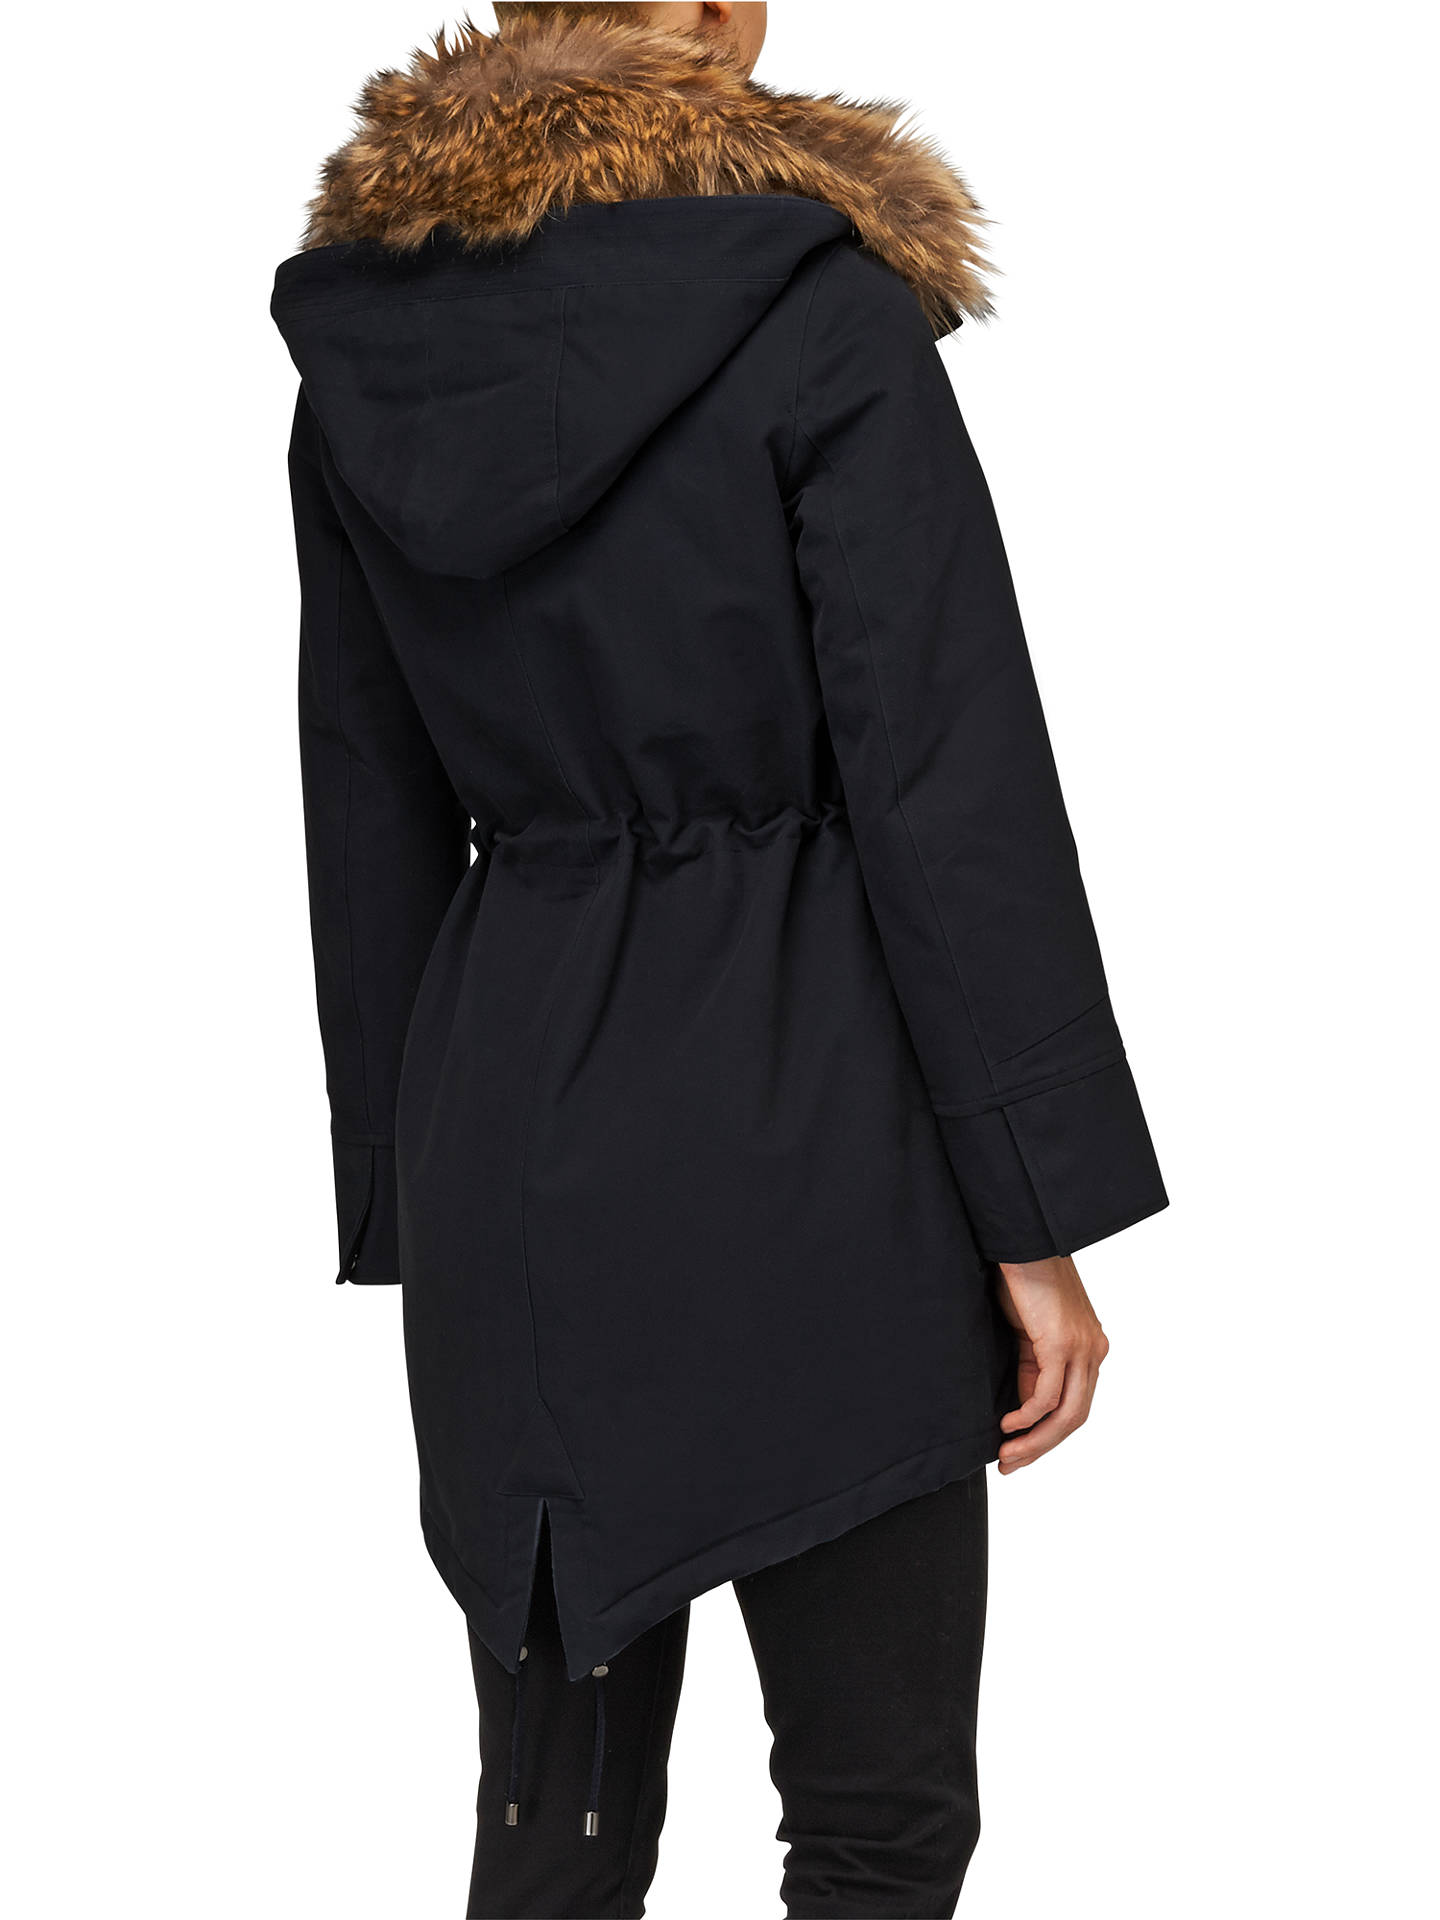 BuyPhase Eight Faye Fur Trim Parka Coat, Navy, 8 Online at johnlewis.com